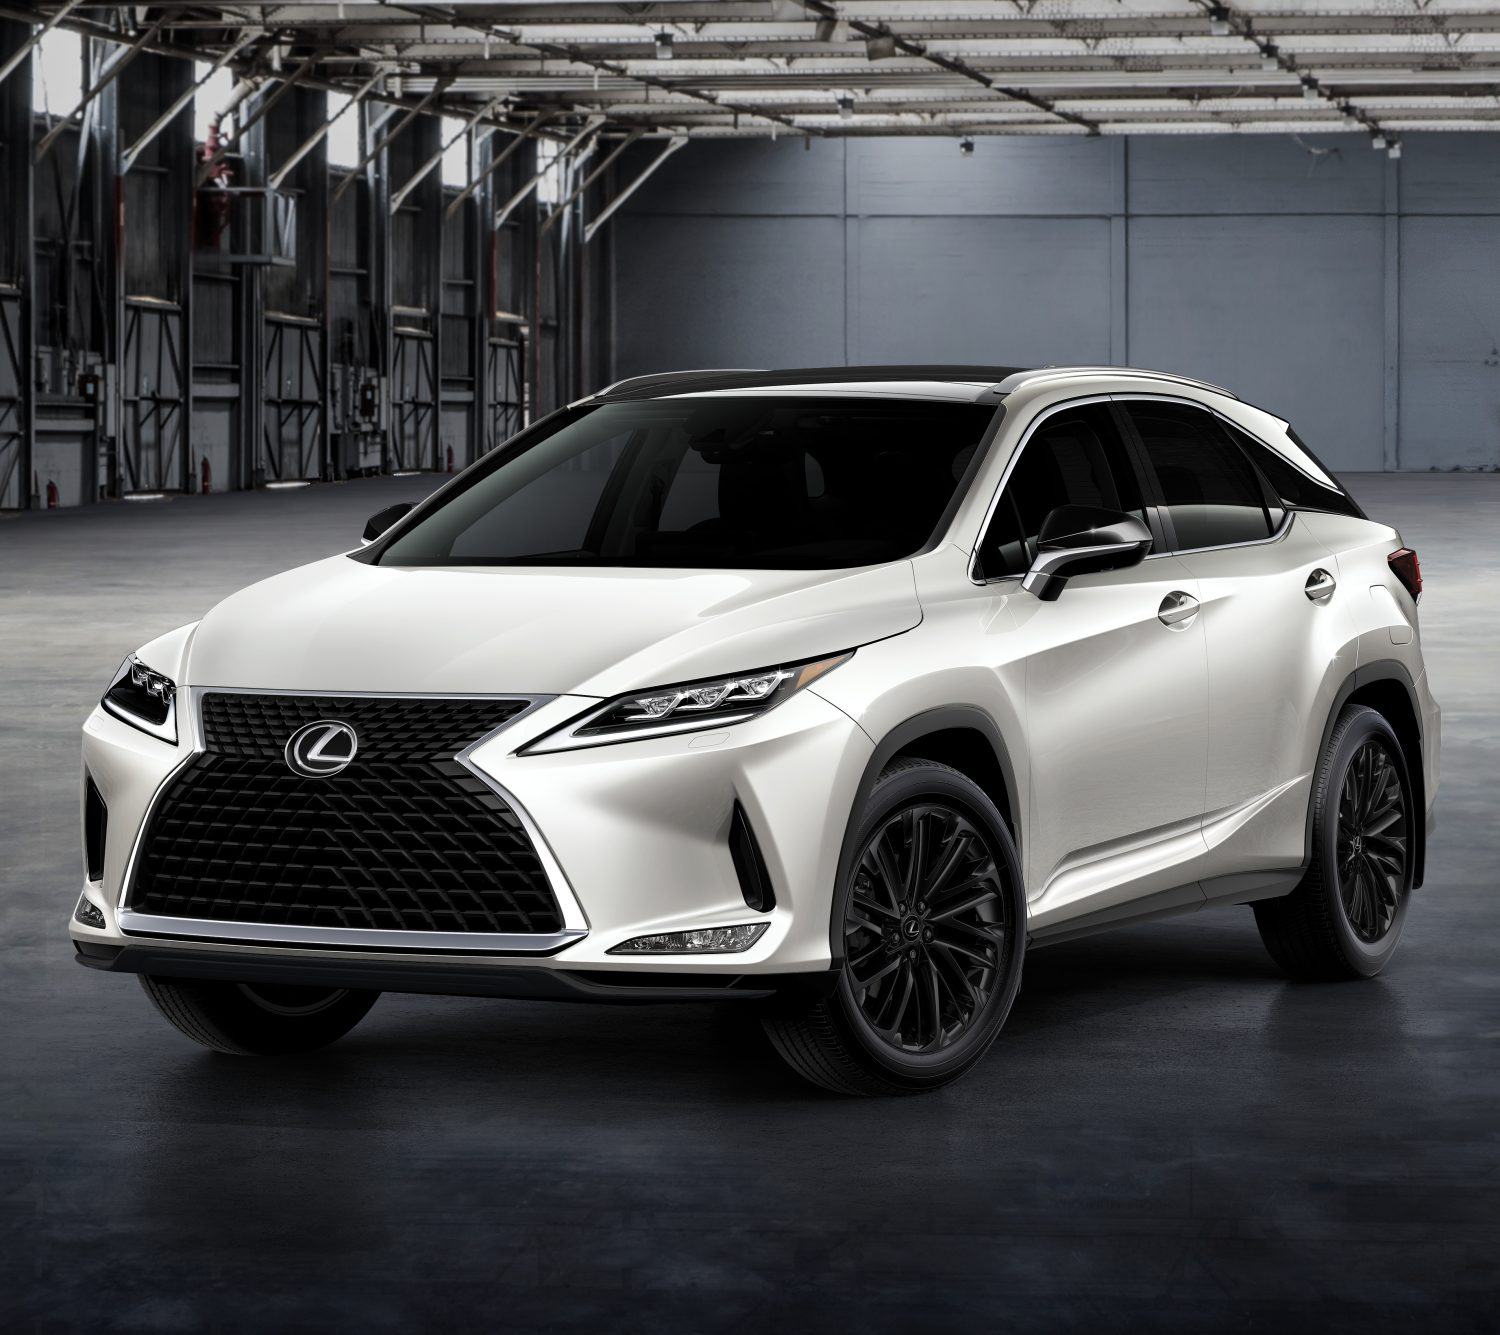 specifications, release date, and price of the 2022 Lexus RX 350L and RX 450hL Black Line Edition in Nigeria